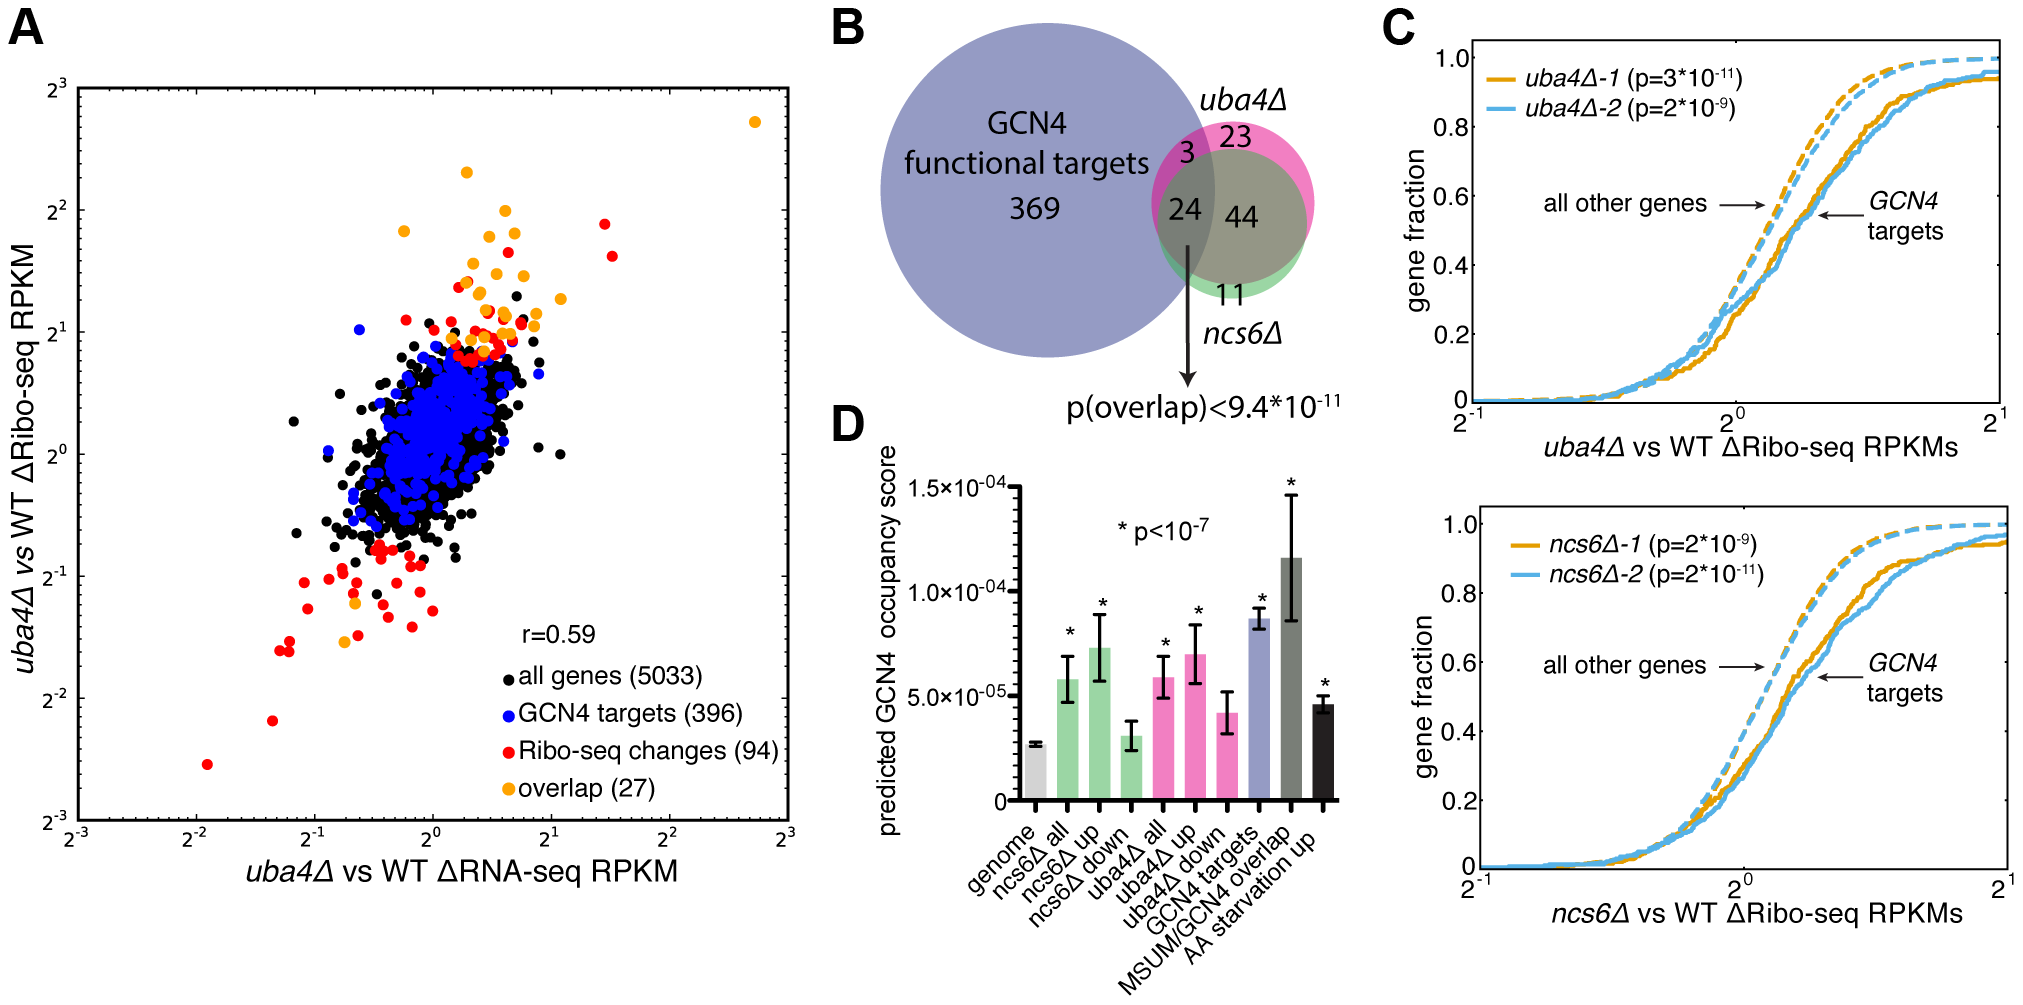 MSUM strains show the gene-expression signatures of <i>GCN4</i> activation.